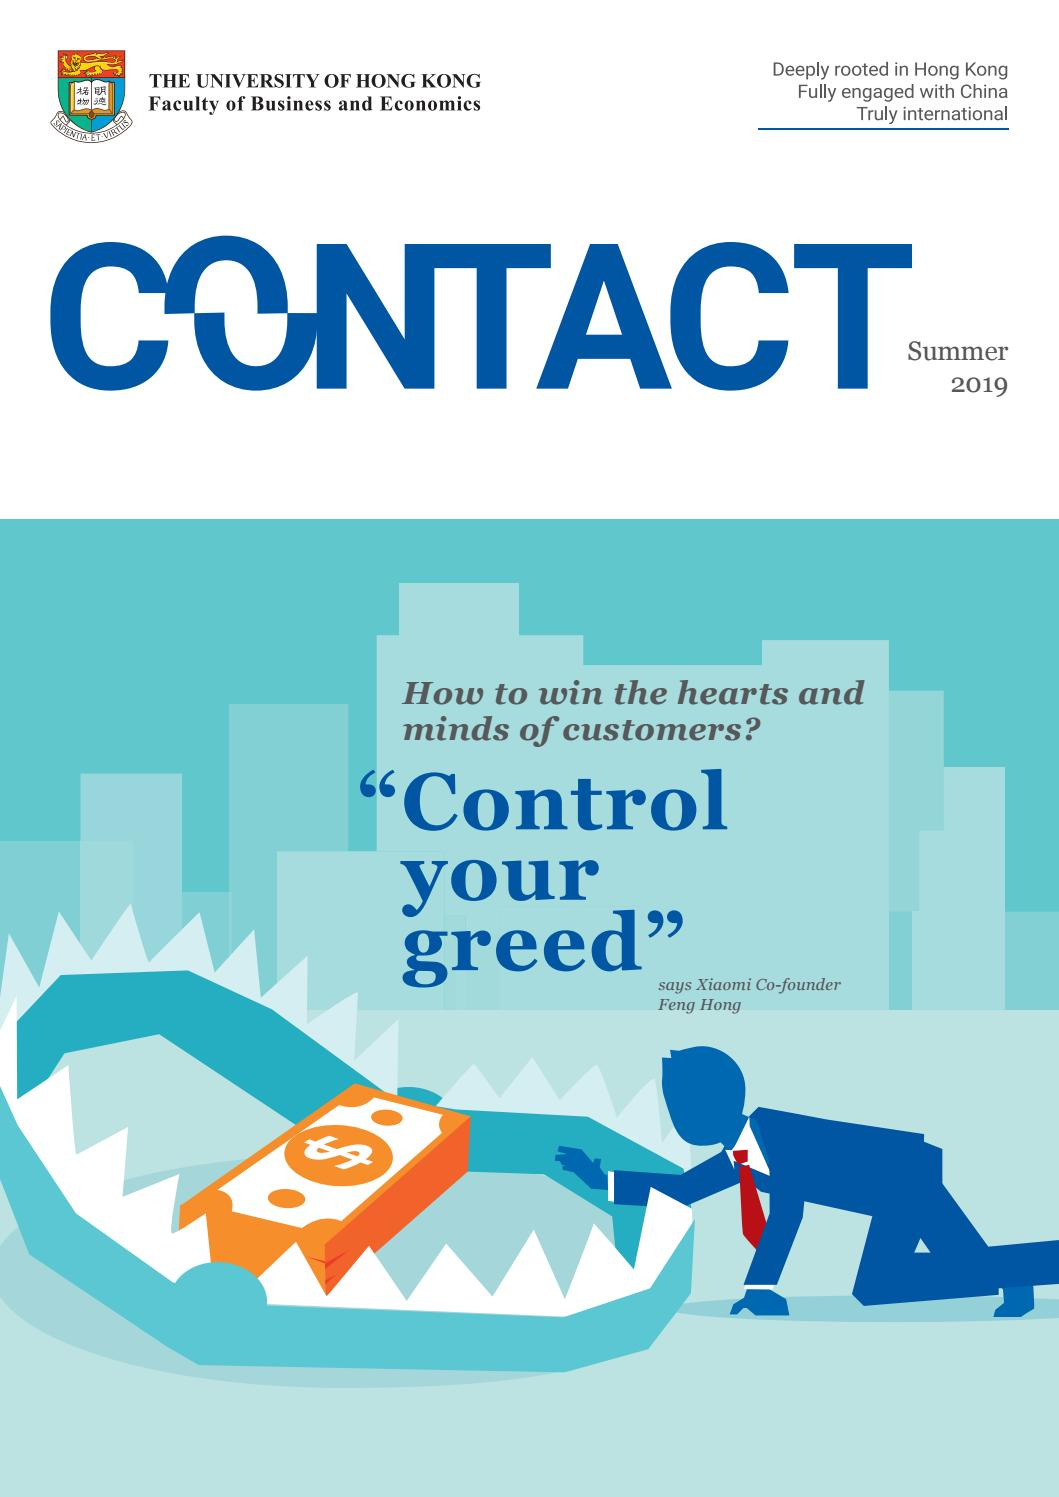 CONTACT (Summer 2019) by HKU Faculty of Business and Economics - issuu